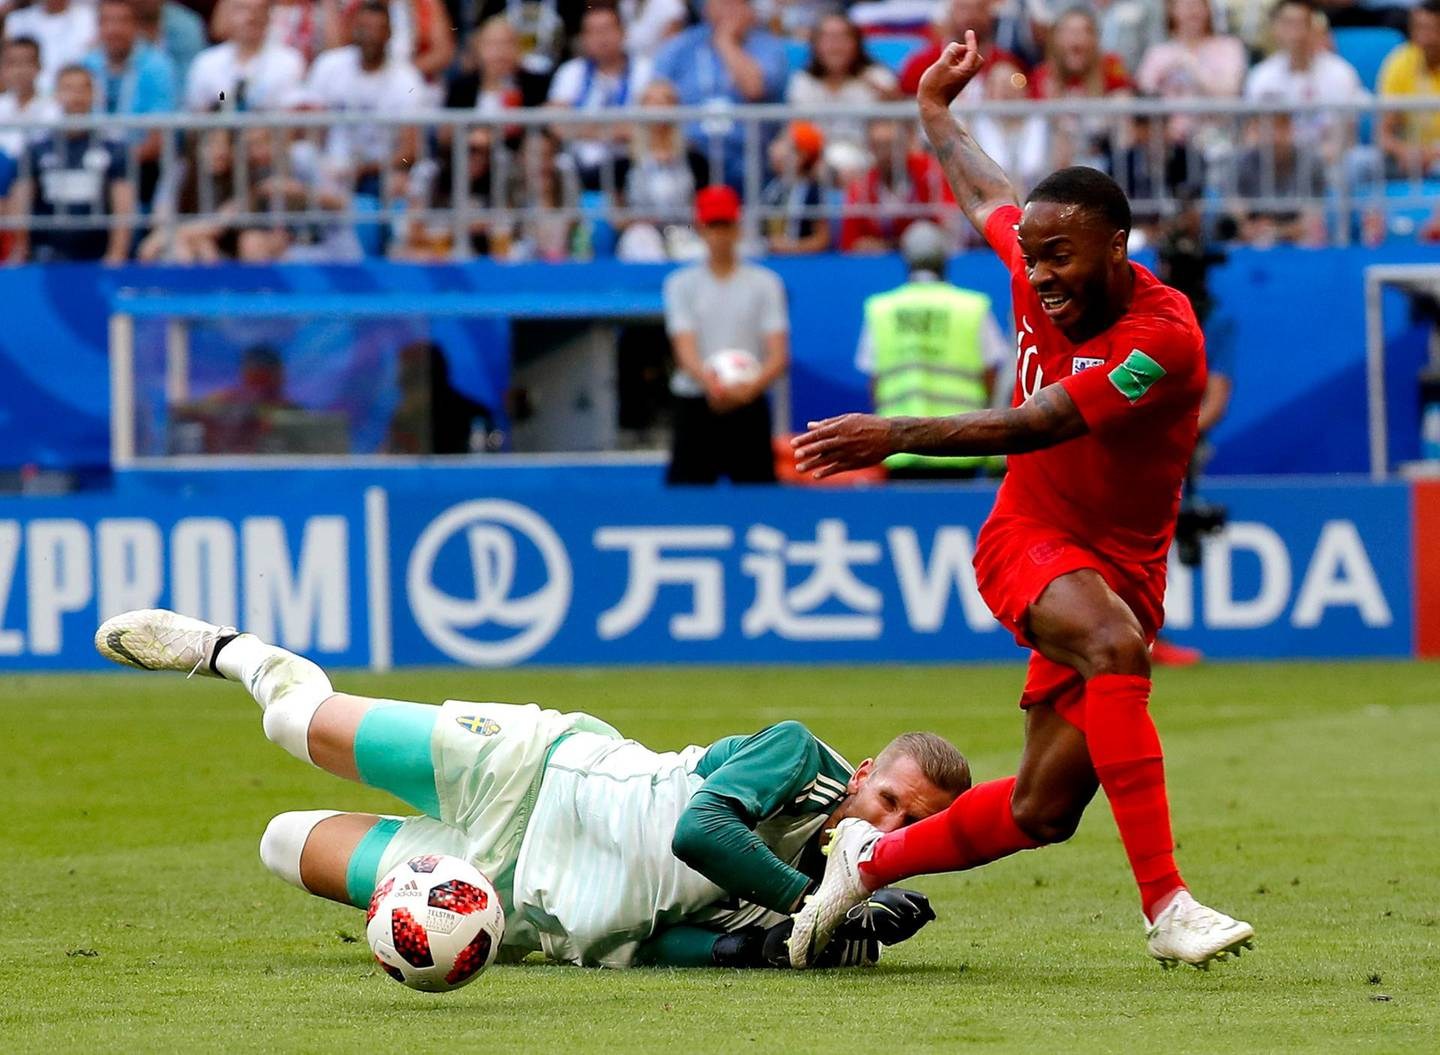 epa06871422 Raheem Sterling of England (R) and goalkeeper Robin Olsen of Sweden in action during the FIFA World Cup 2018 quarter final soccer match between Sweden and England in Samara, Russia, 07 July 2018.  (RESTRICTIONS APPLY: Editorial Use Only, not used in association with any commercial entity - Images must not be used in any form of alert service or push service of any kind including via mobile alert services, downloads to mobile devices or MMS messaging - Images must appear as still images and must not emulate match action video footage - No alteration is made to, and no text or image is superimposed over, any published image which: (a) intentionally obscures or removes a sponsor identification image; or (b) adds or overlays the commercial identification of any third party which is not officially associated with the FIFA World Cup)  EPA/SERGEI ILNITSKY   EDITORIAL USE ONLY